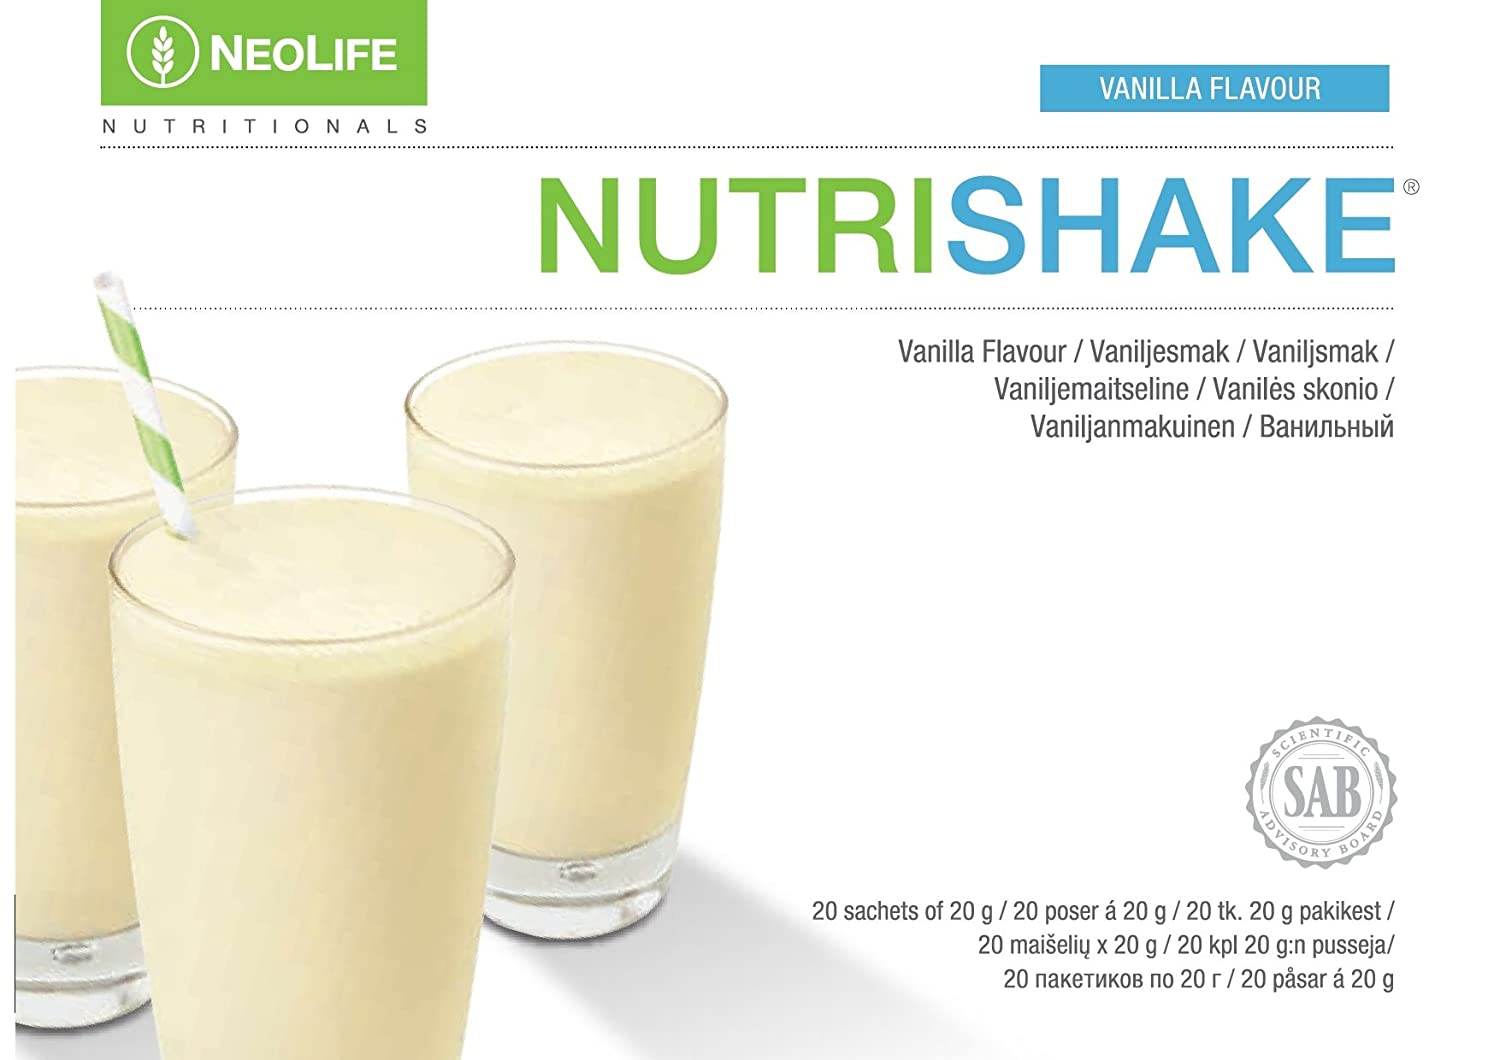 Neolife Nutrishake Vanilla 20 Saschets Apporta Protein And Football Ideal For Athletes The Whole Family Benefits Key